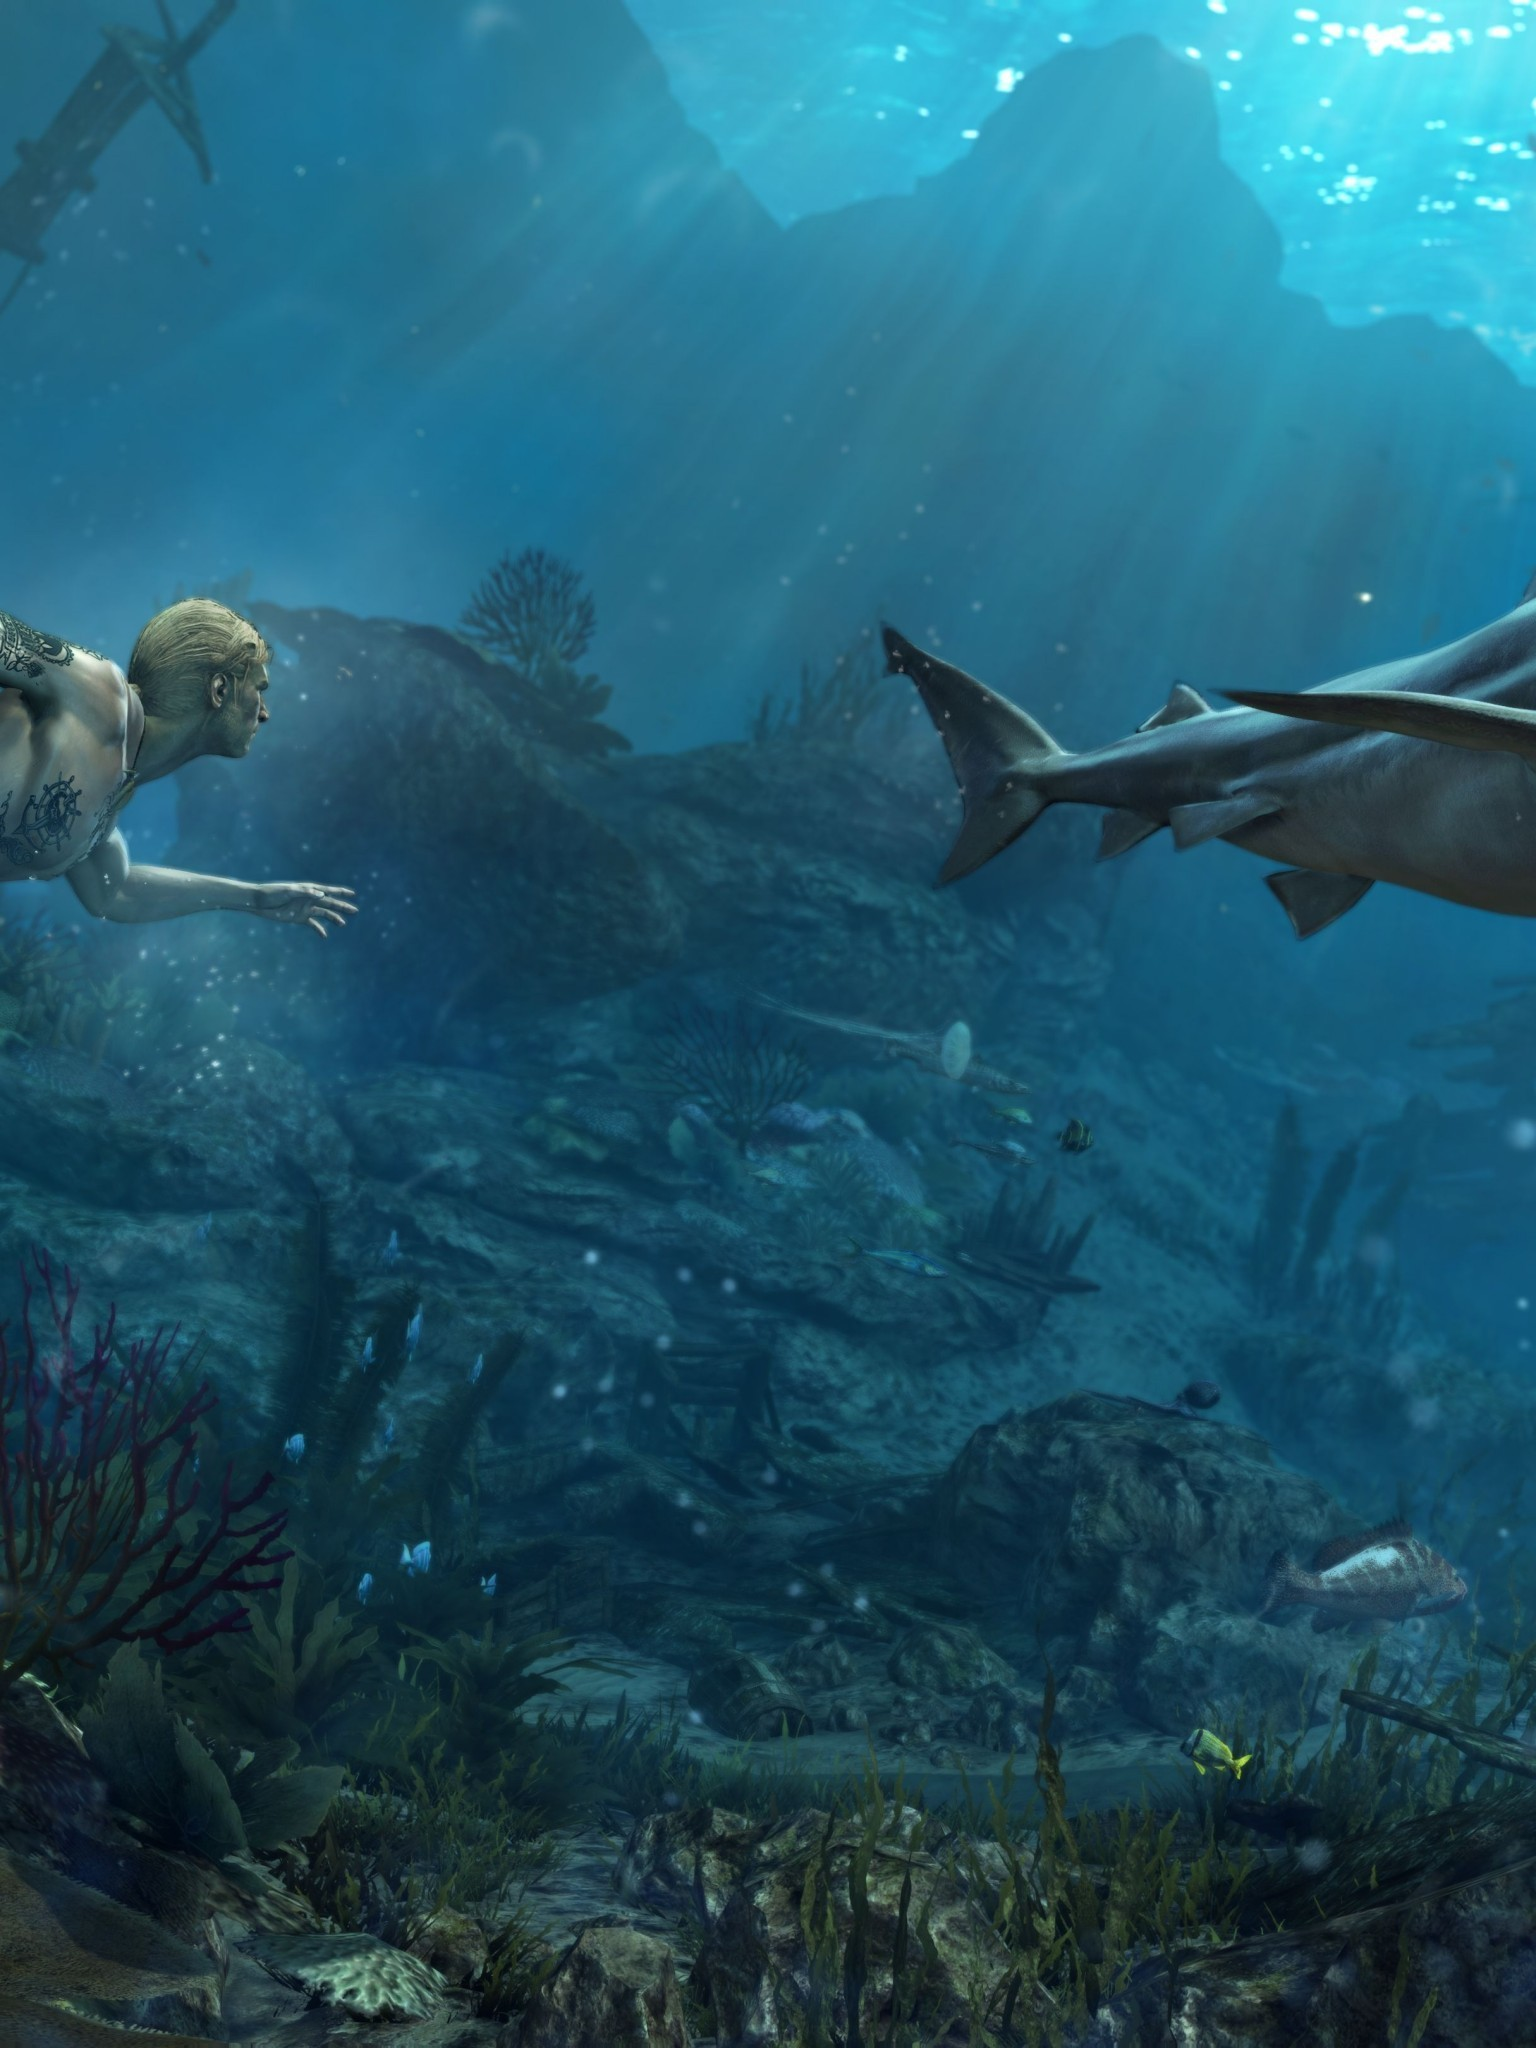 Res: 1536x2048, Assassin's Creed 4: Black Flag, Underwater, Shark, Shipwreck